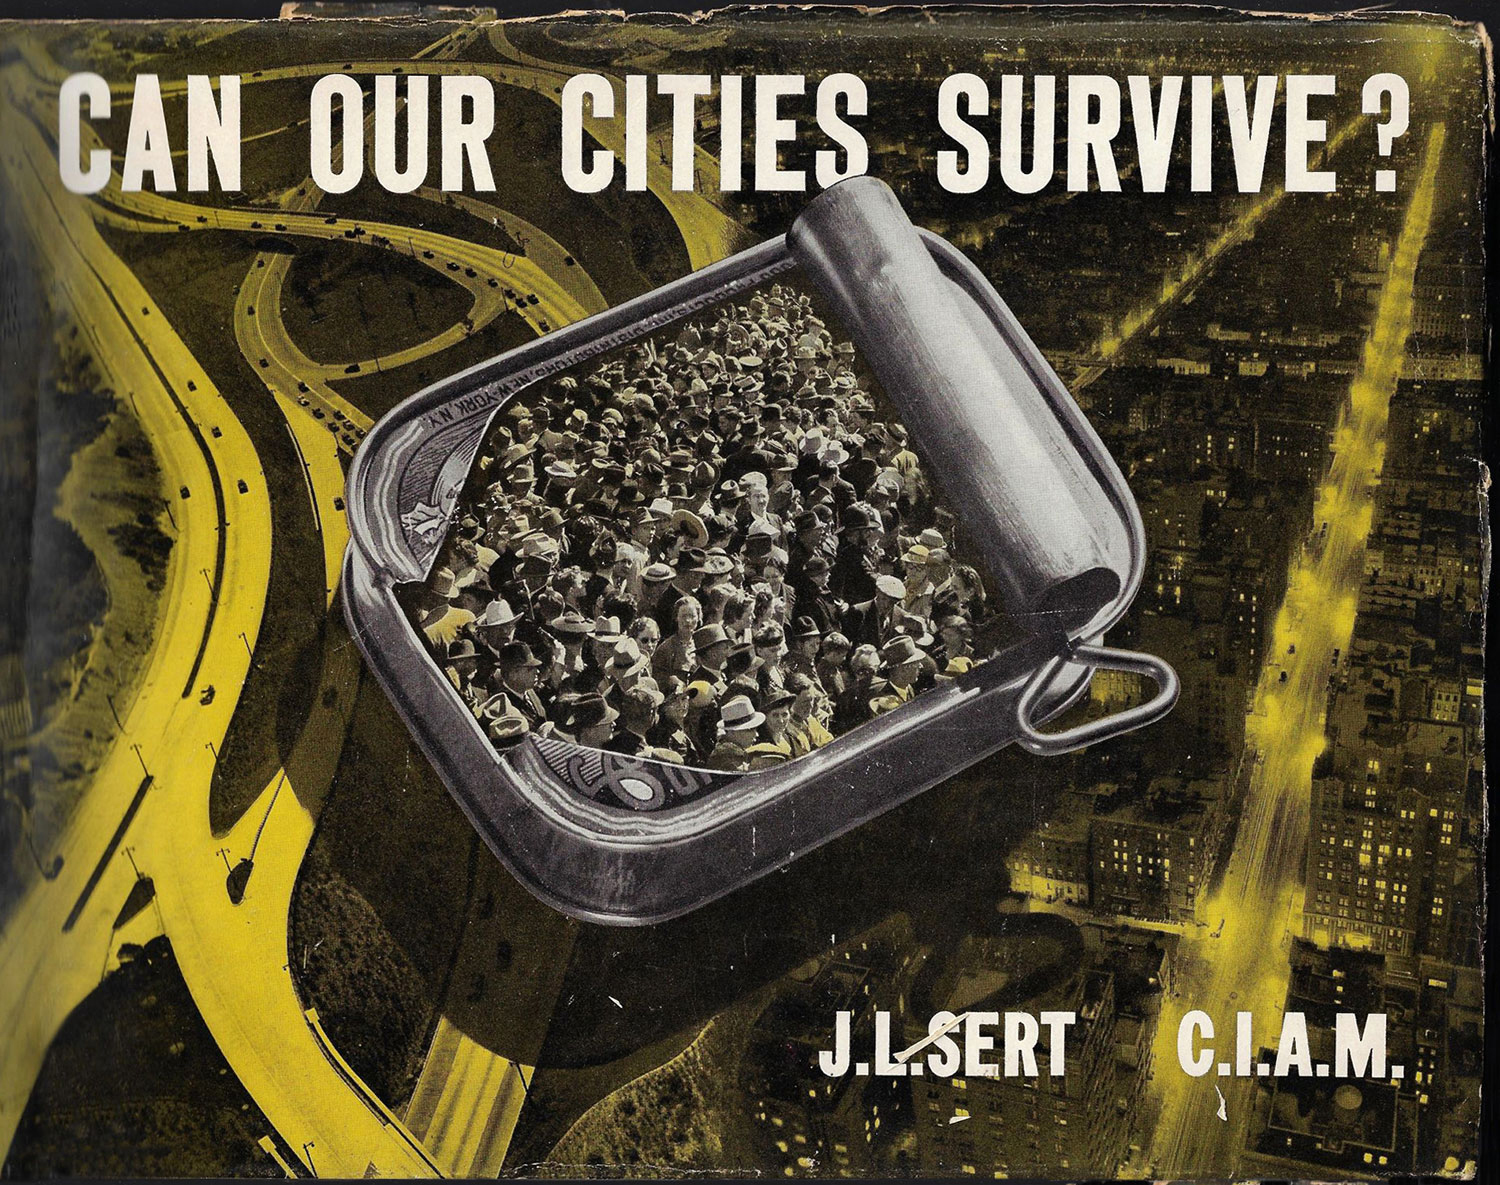 Abb-12_Jose-Luis-Sert-Can-Our-Cities-Survive-1942